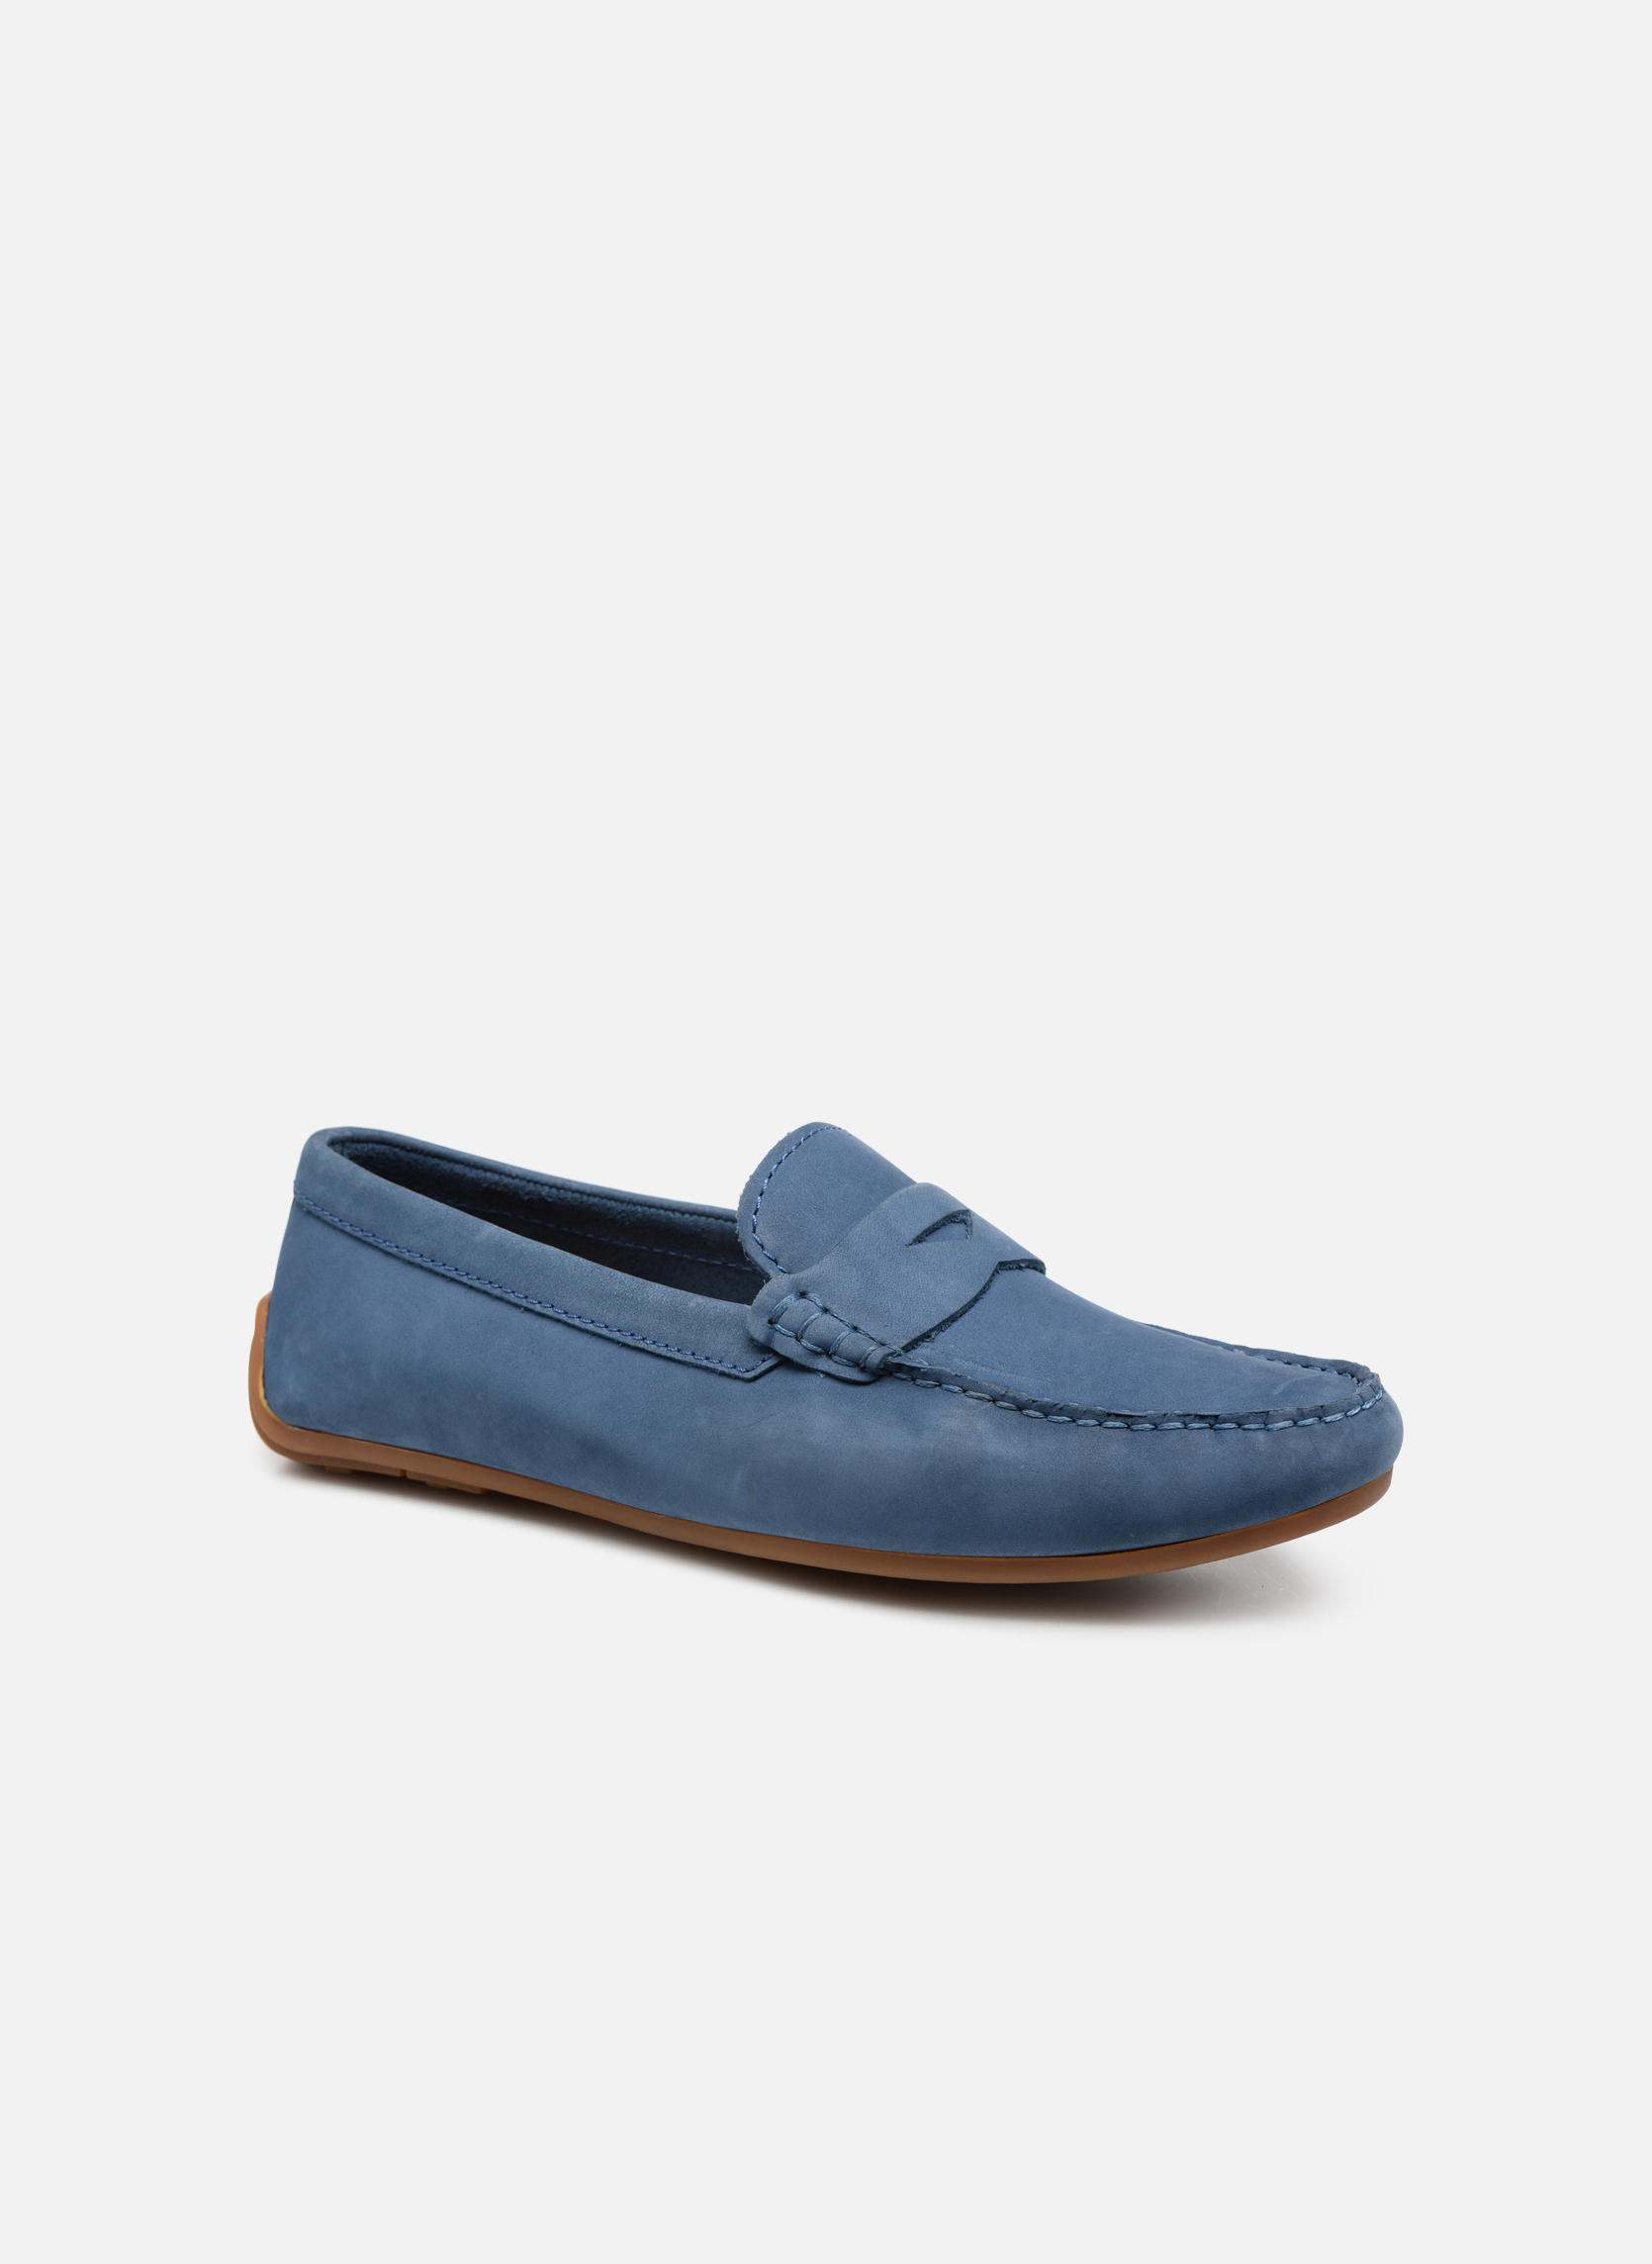 Mocassins Reazor Drive by Clarks